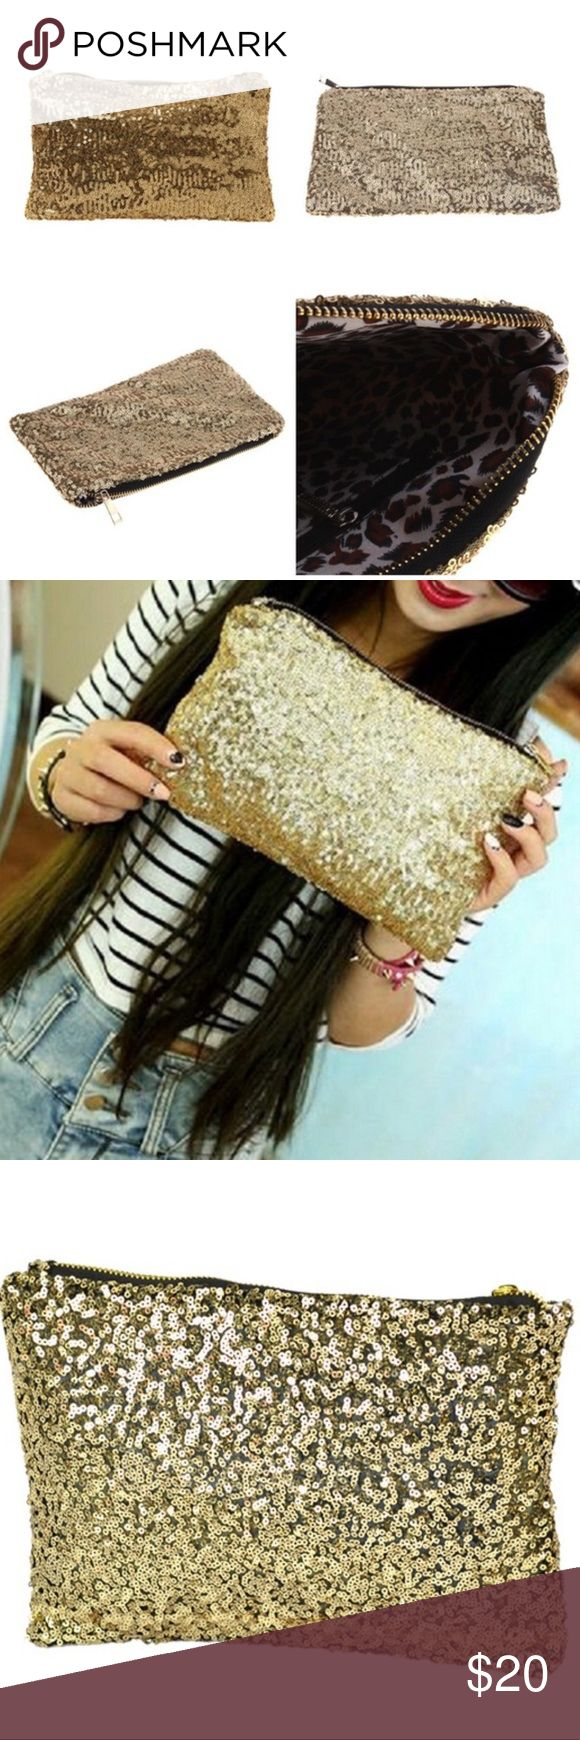 "Gold Sequin Clutch w/ Leopard print lining NEW!! Amazing!! Gold Sequined Clutch with leopard print inside lining, zippered-closure and one zippered inside pocket.  Length: 10""  Height: 6""   Width: 1/4"" (empty) Bags Clutches & Wristlets"